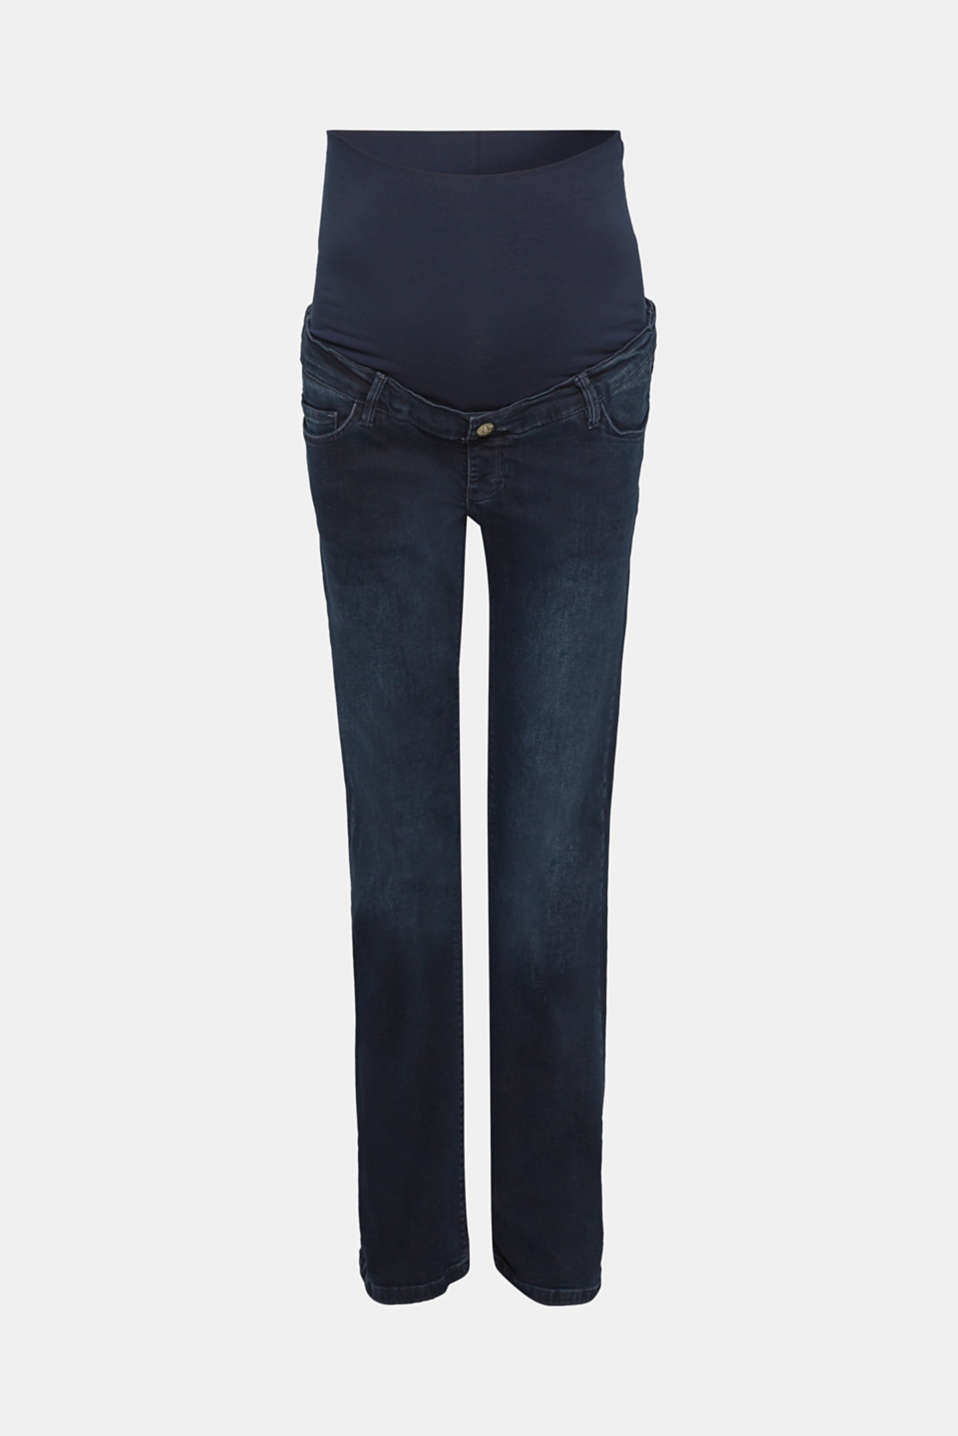 Esprit - Stretch bootcut jeans with an over-bump waistband